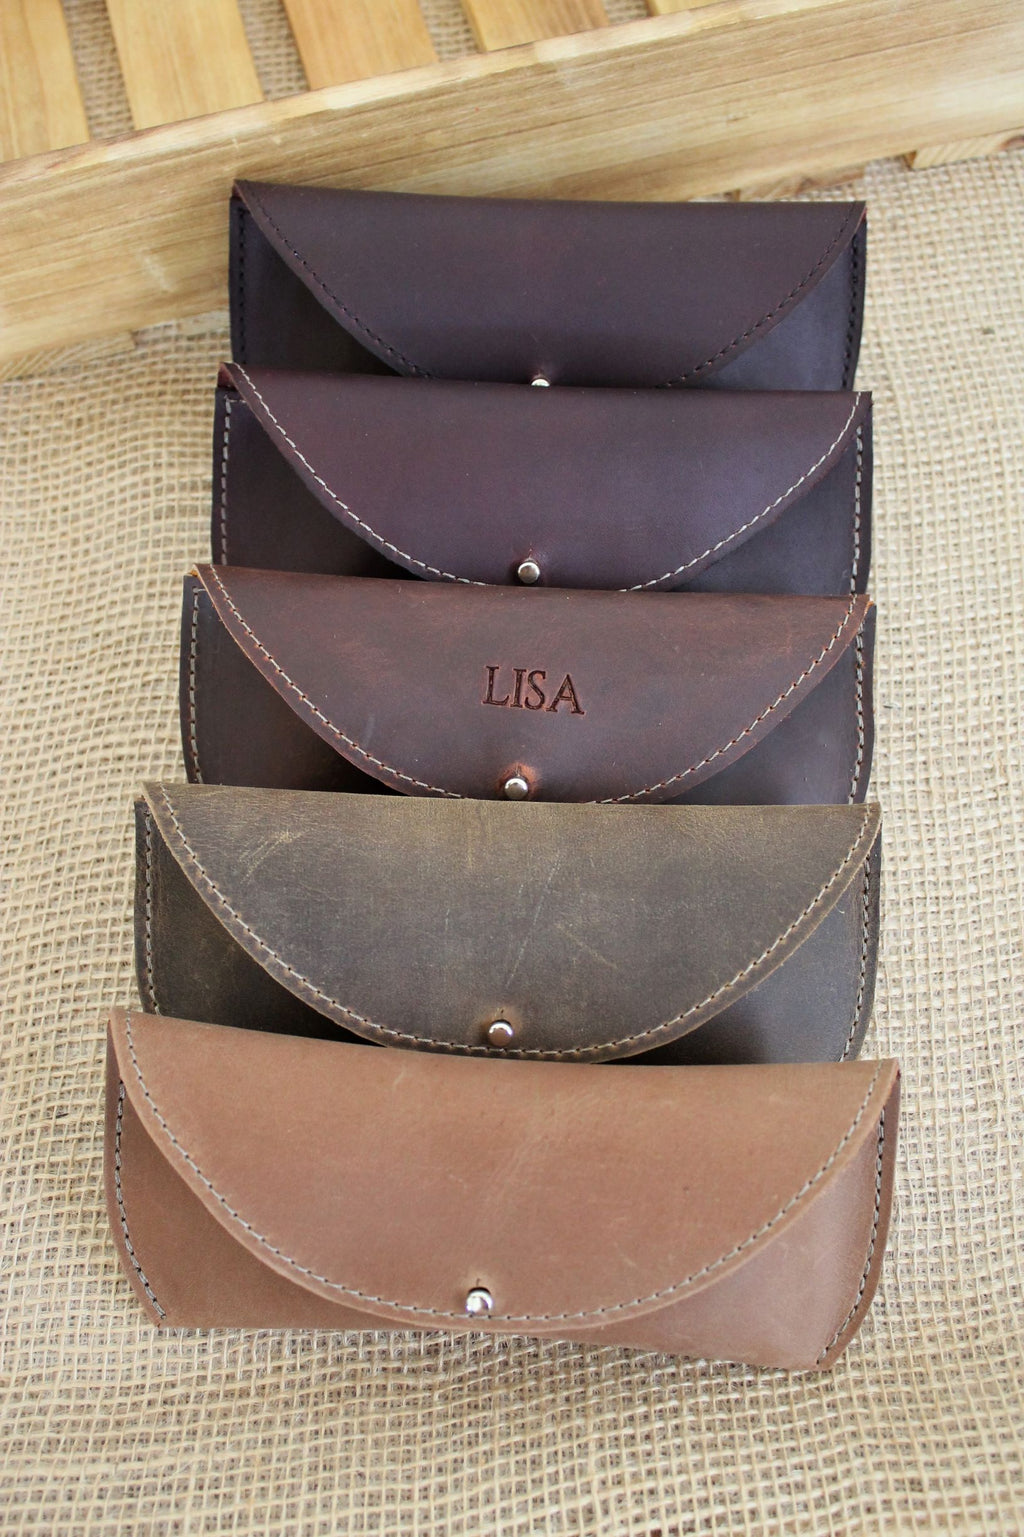 Personalized Leather Sunglass Case - available in Sable, Distressed Brown, Cognac or Burgundy